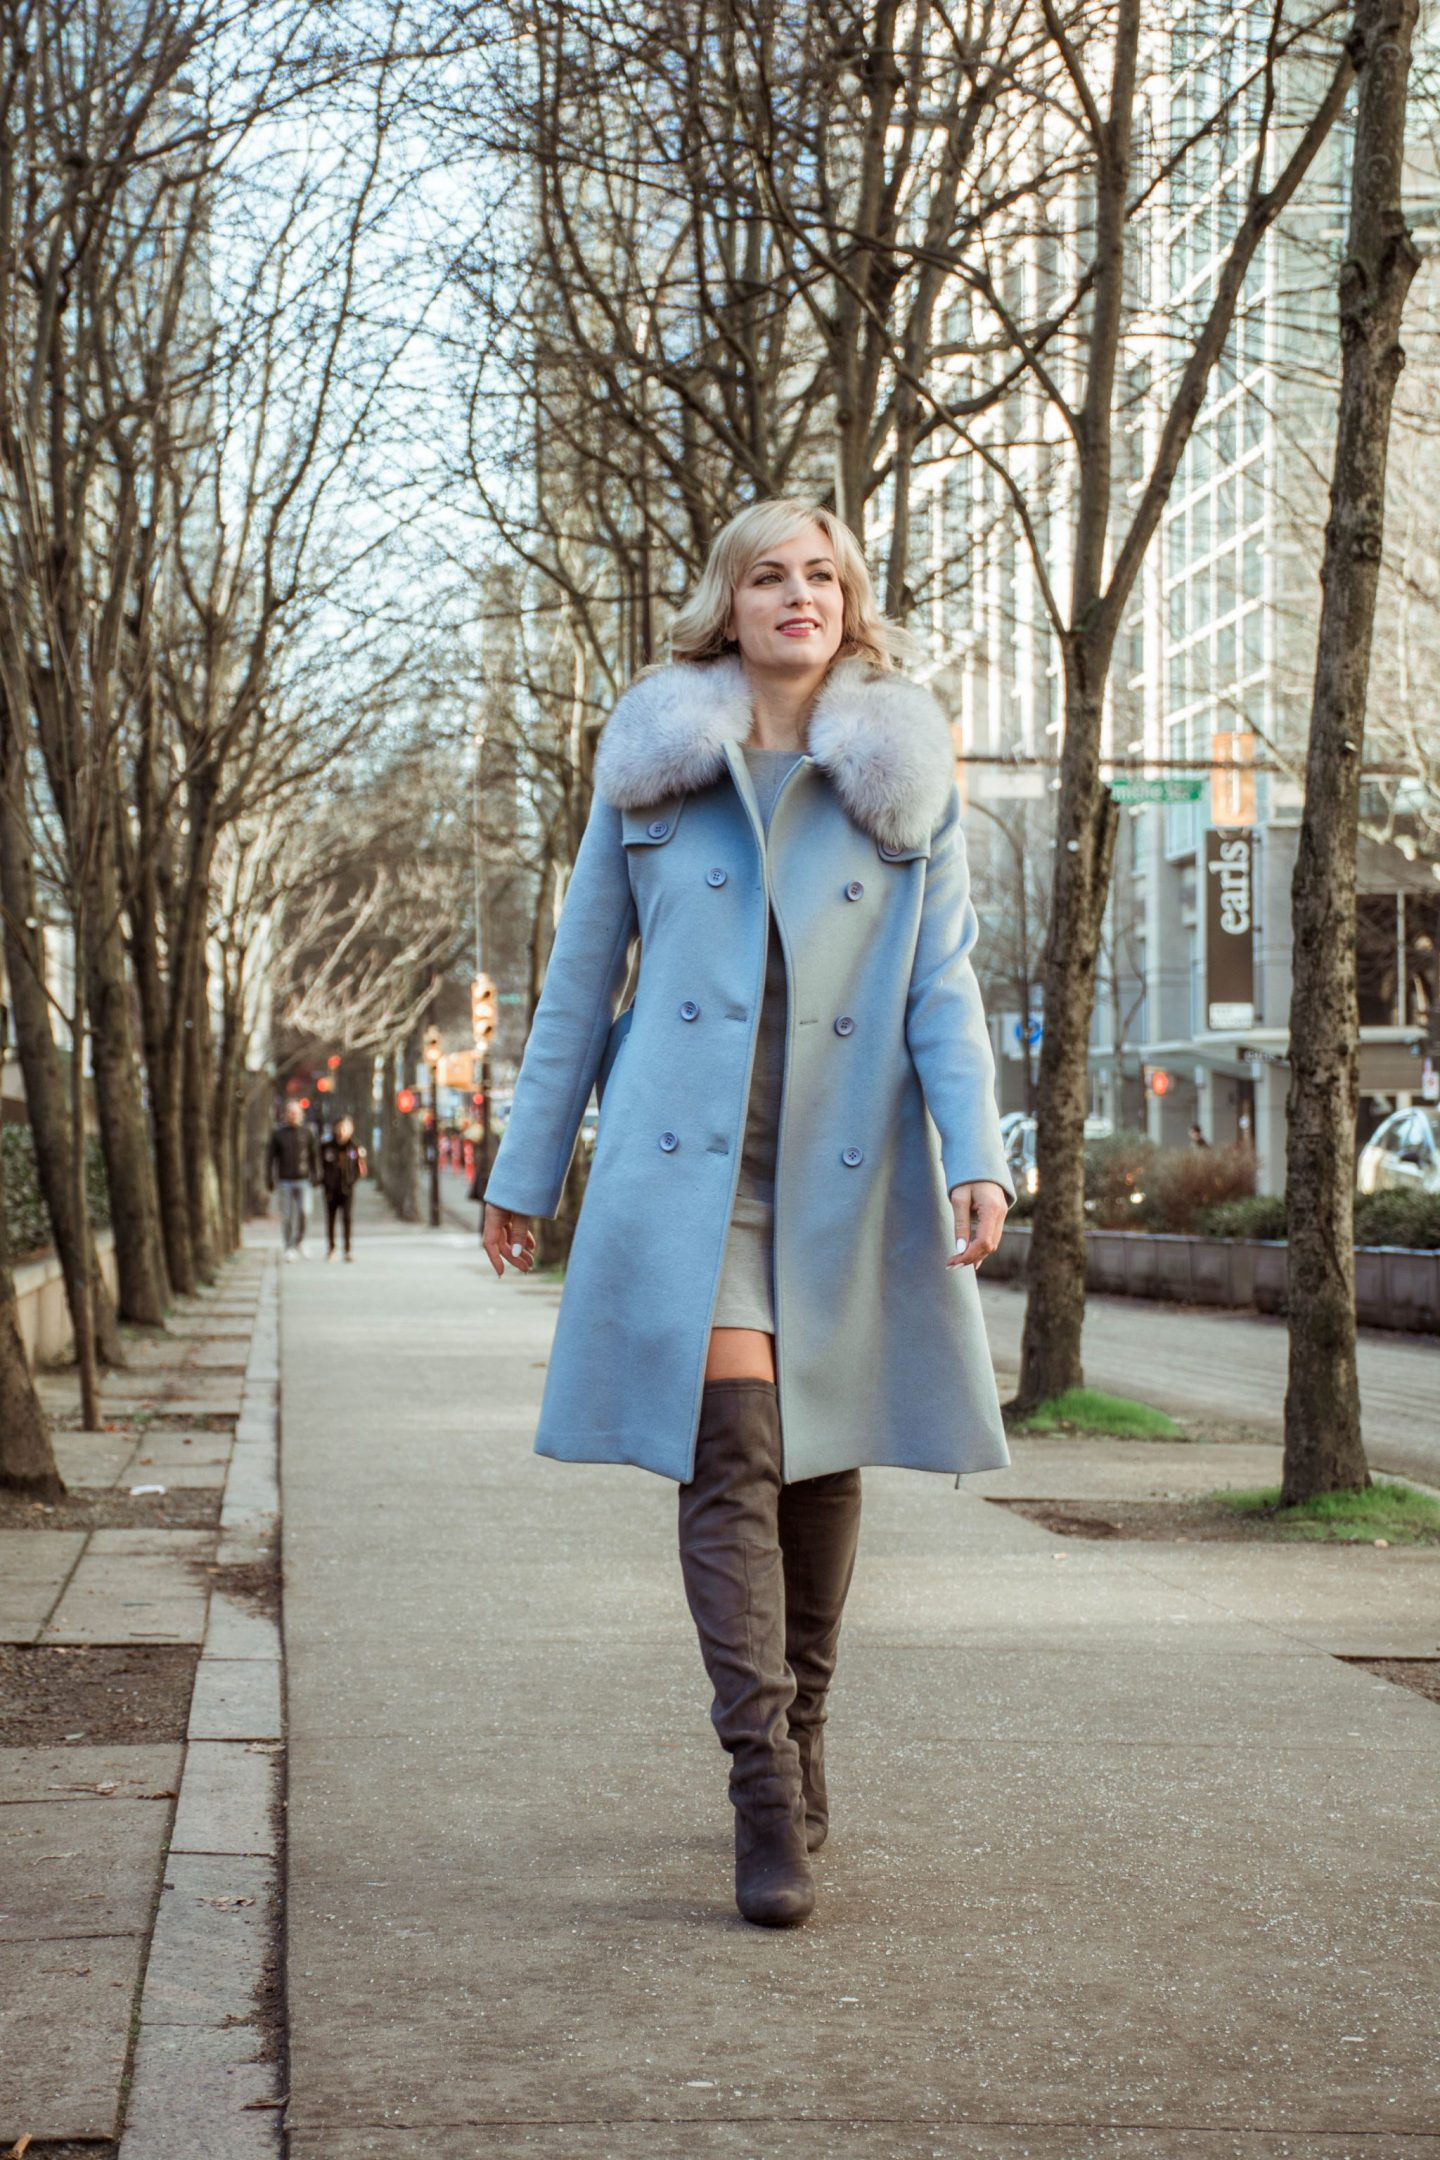 legalleeblonde in sicily clothing coat and grey over the knee boots